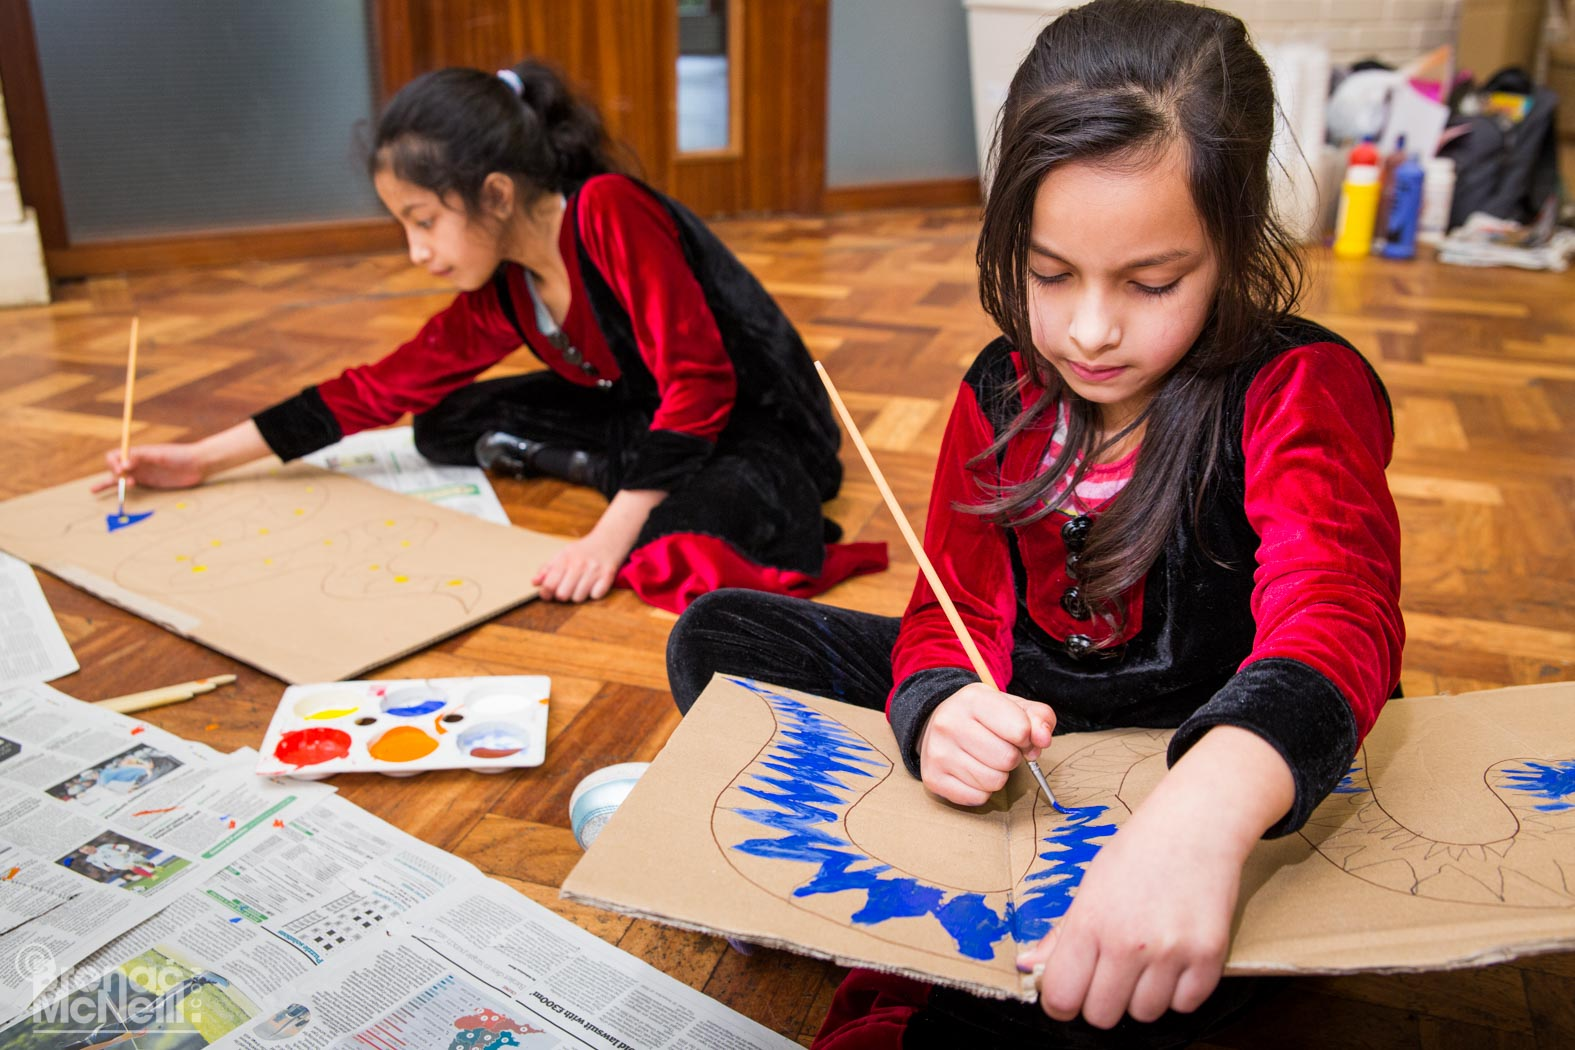 children painting cardboard